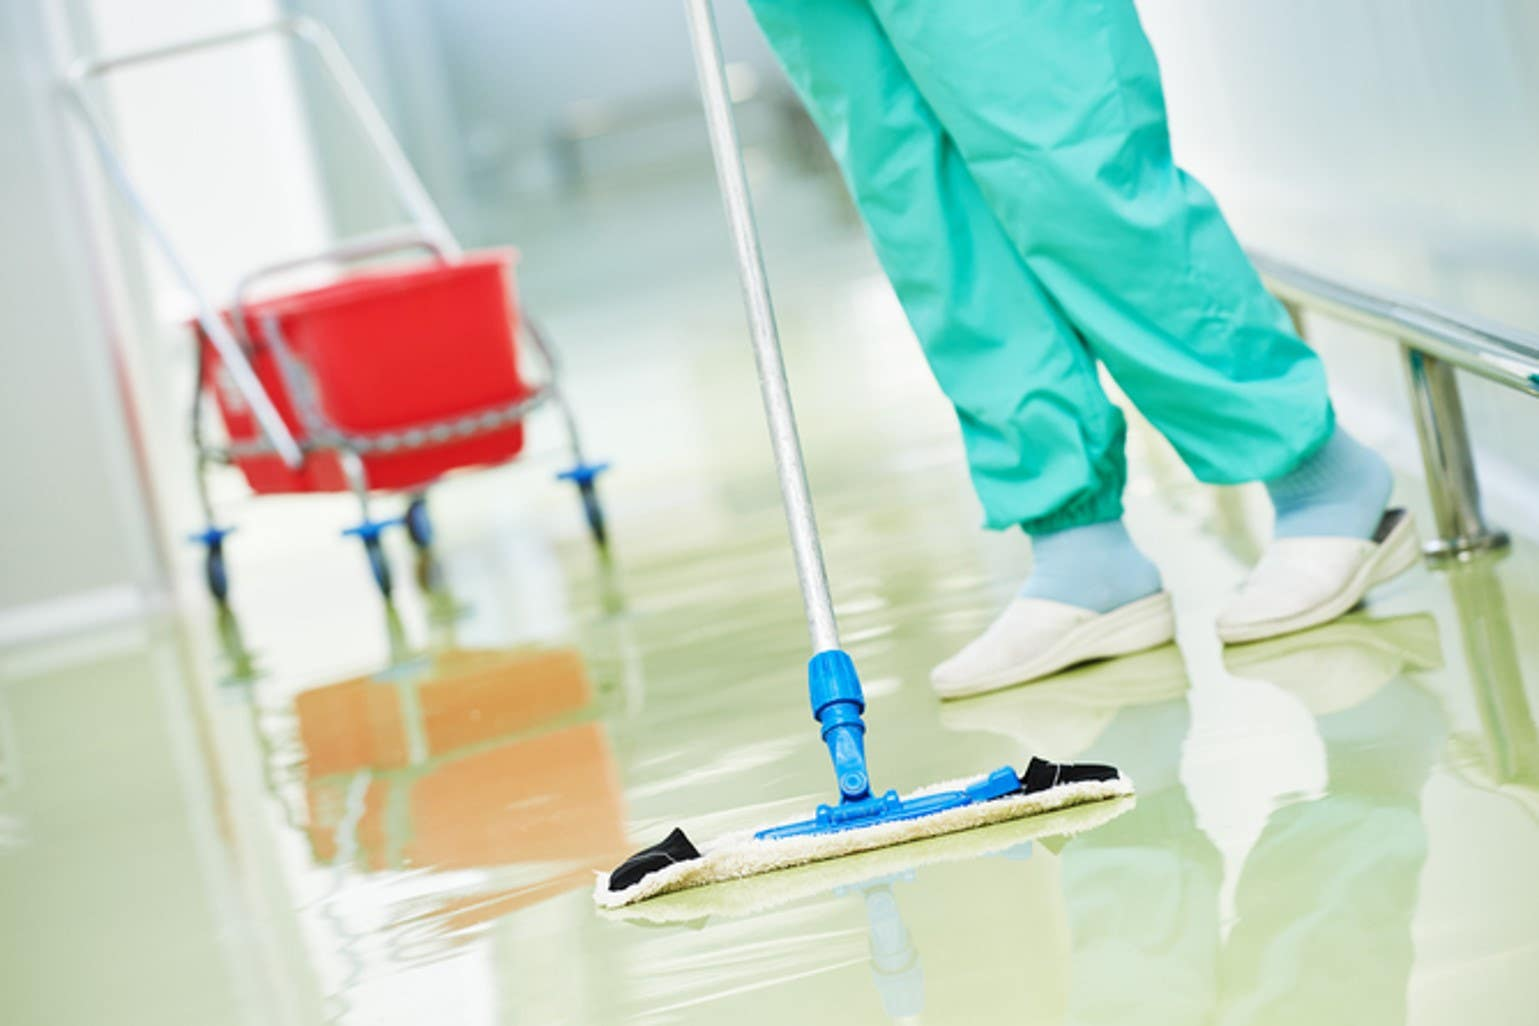 Practice cleaning and disinfection